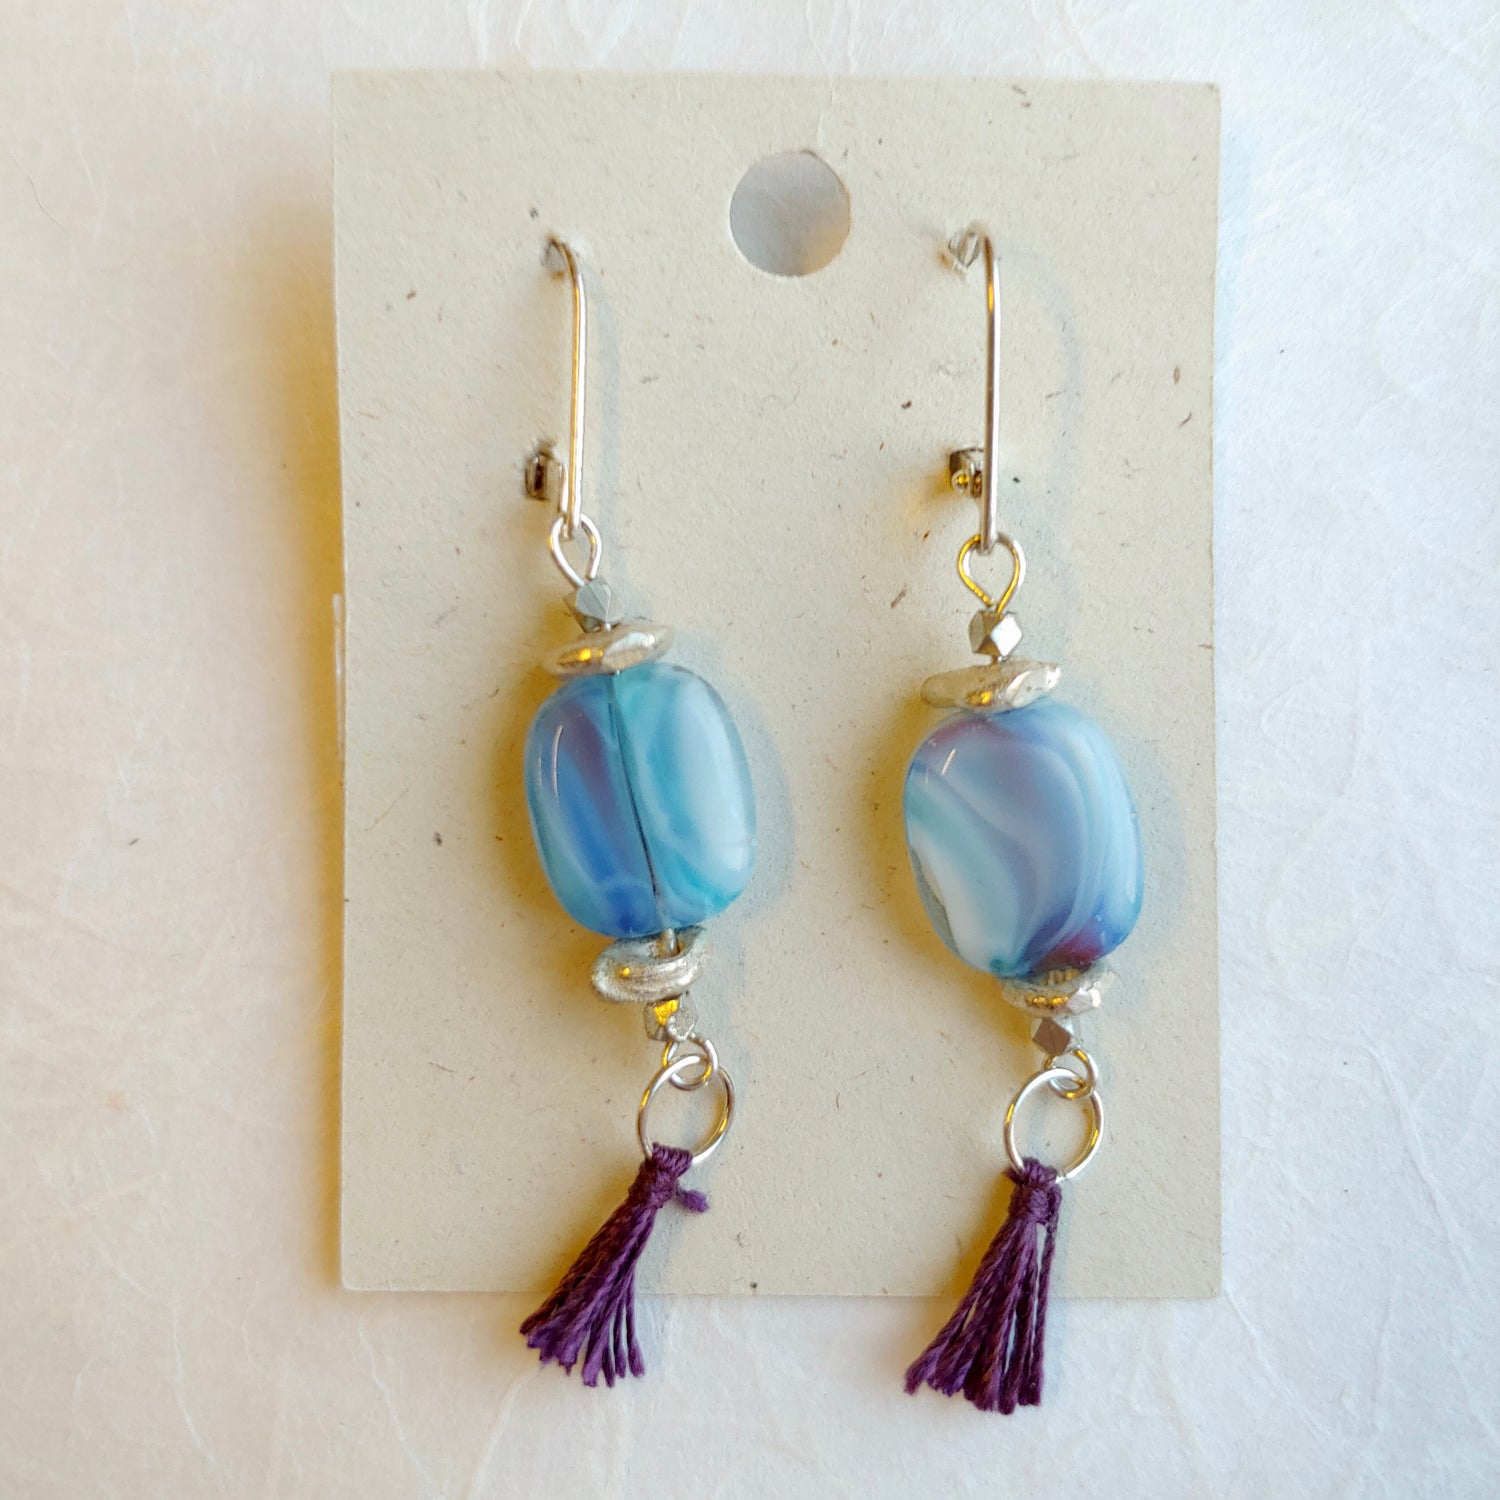 Image of Blue Lavender Beads with Silk Tassel earrings